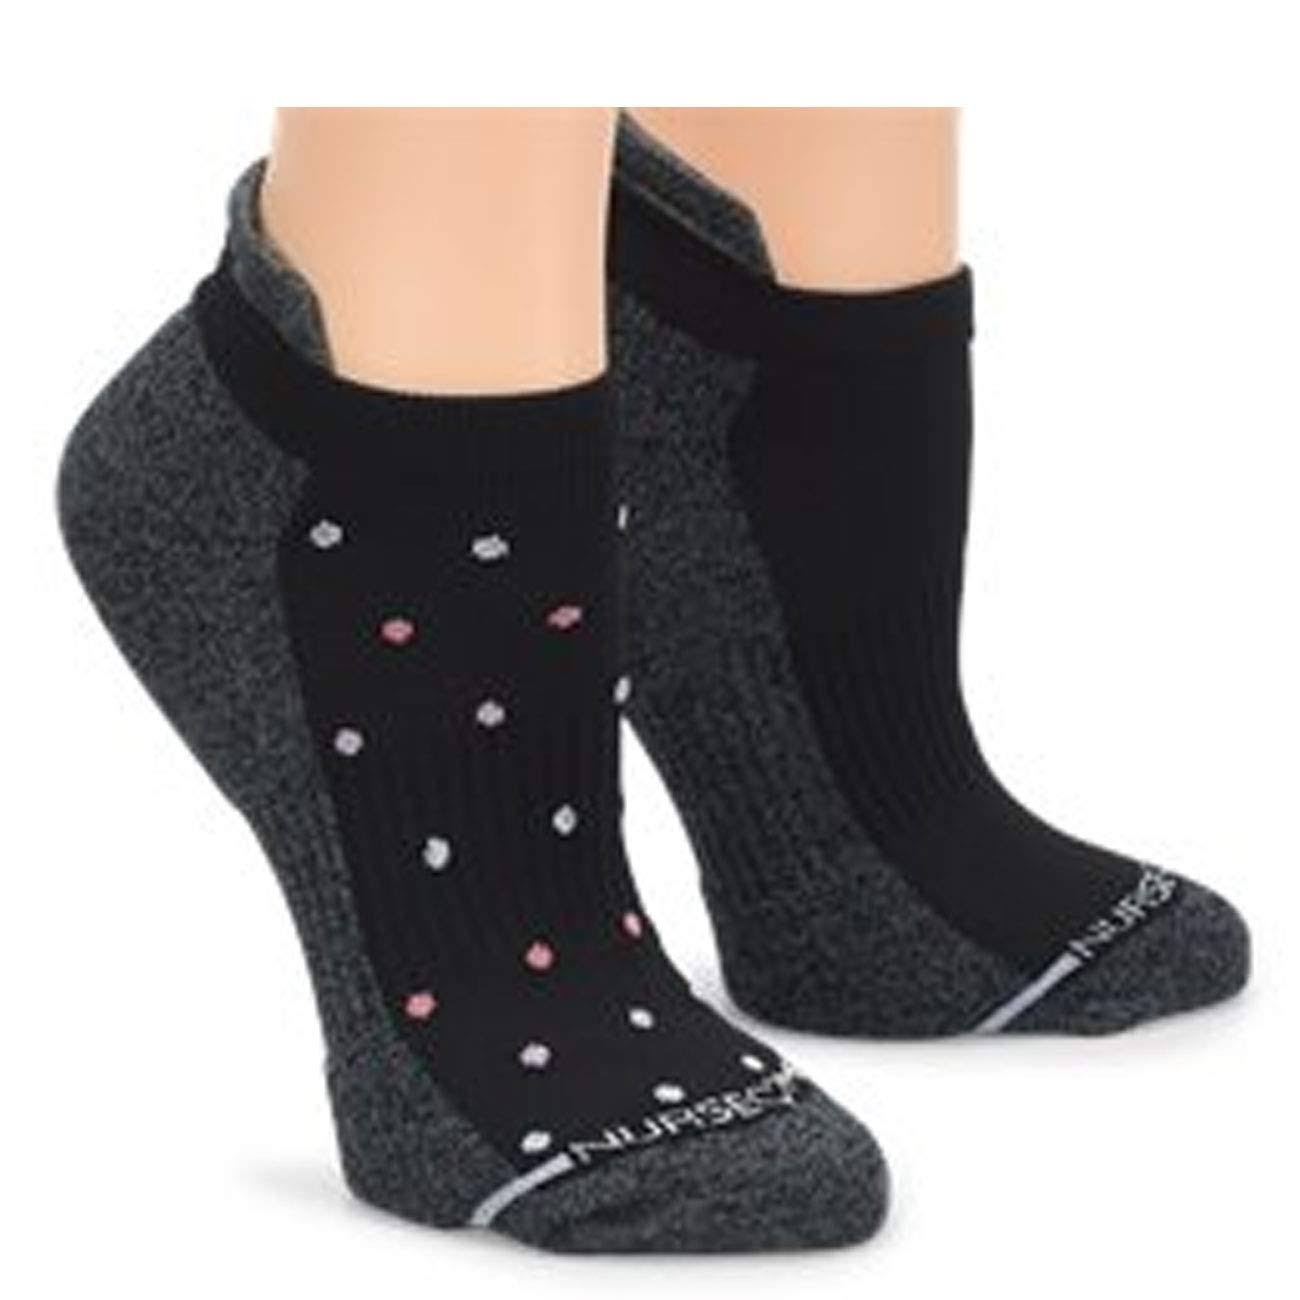 Nurse Mates Compression Anklet Socks - 2-Pack